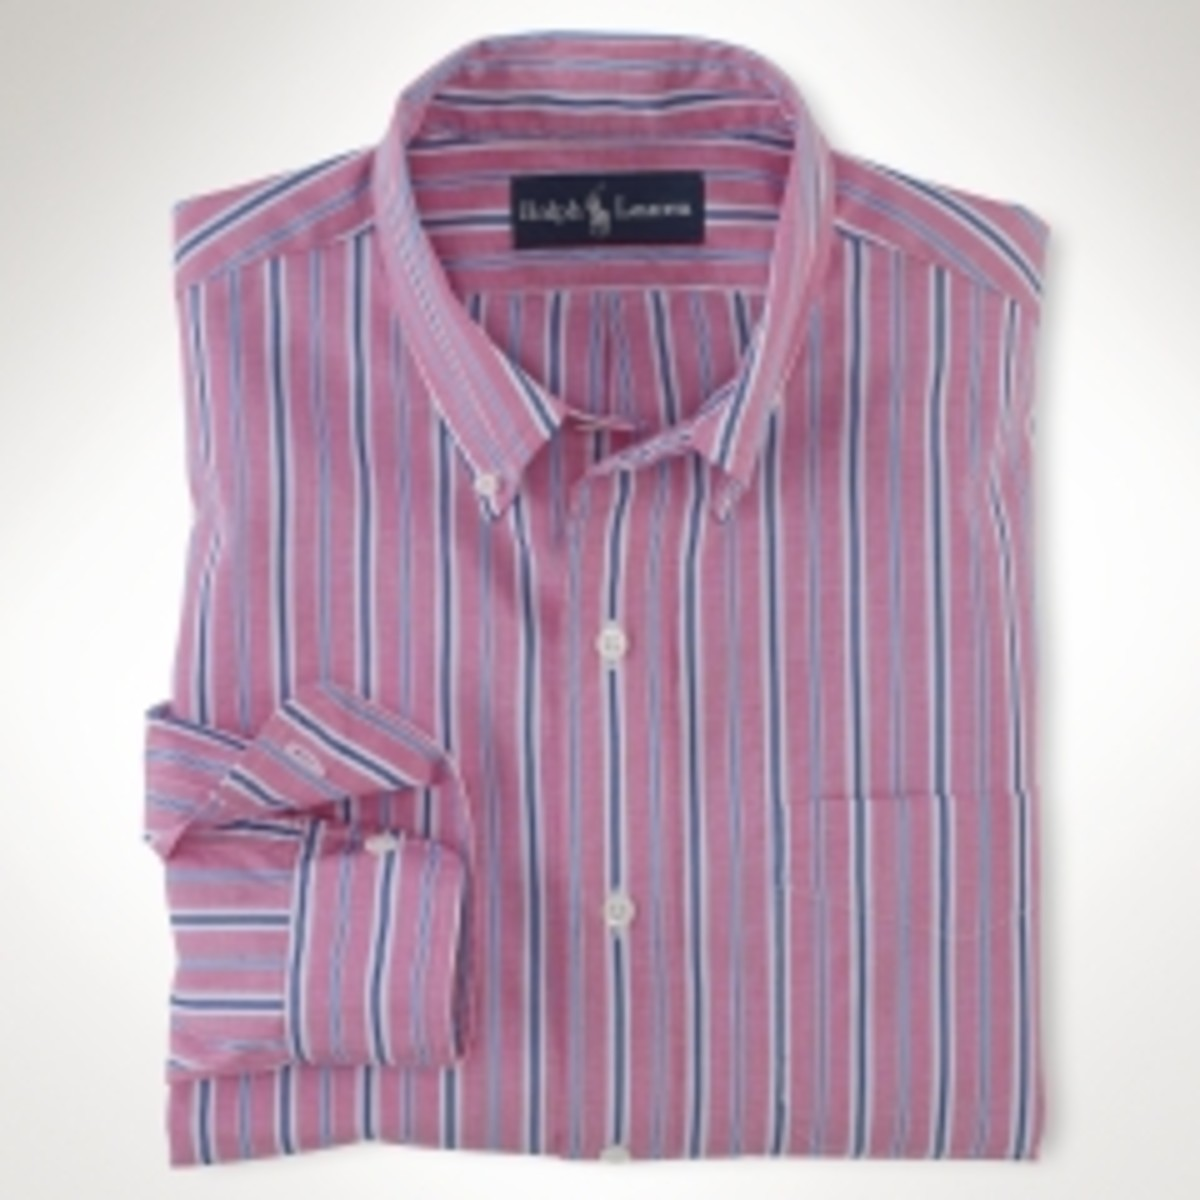 Polo Ralph Lauren. Custom-Fit End-On-End Stripe, $29.99